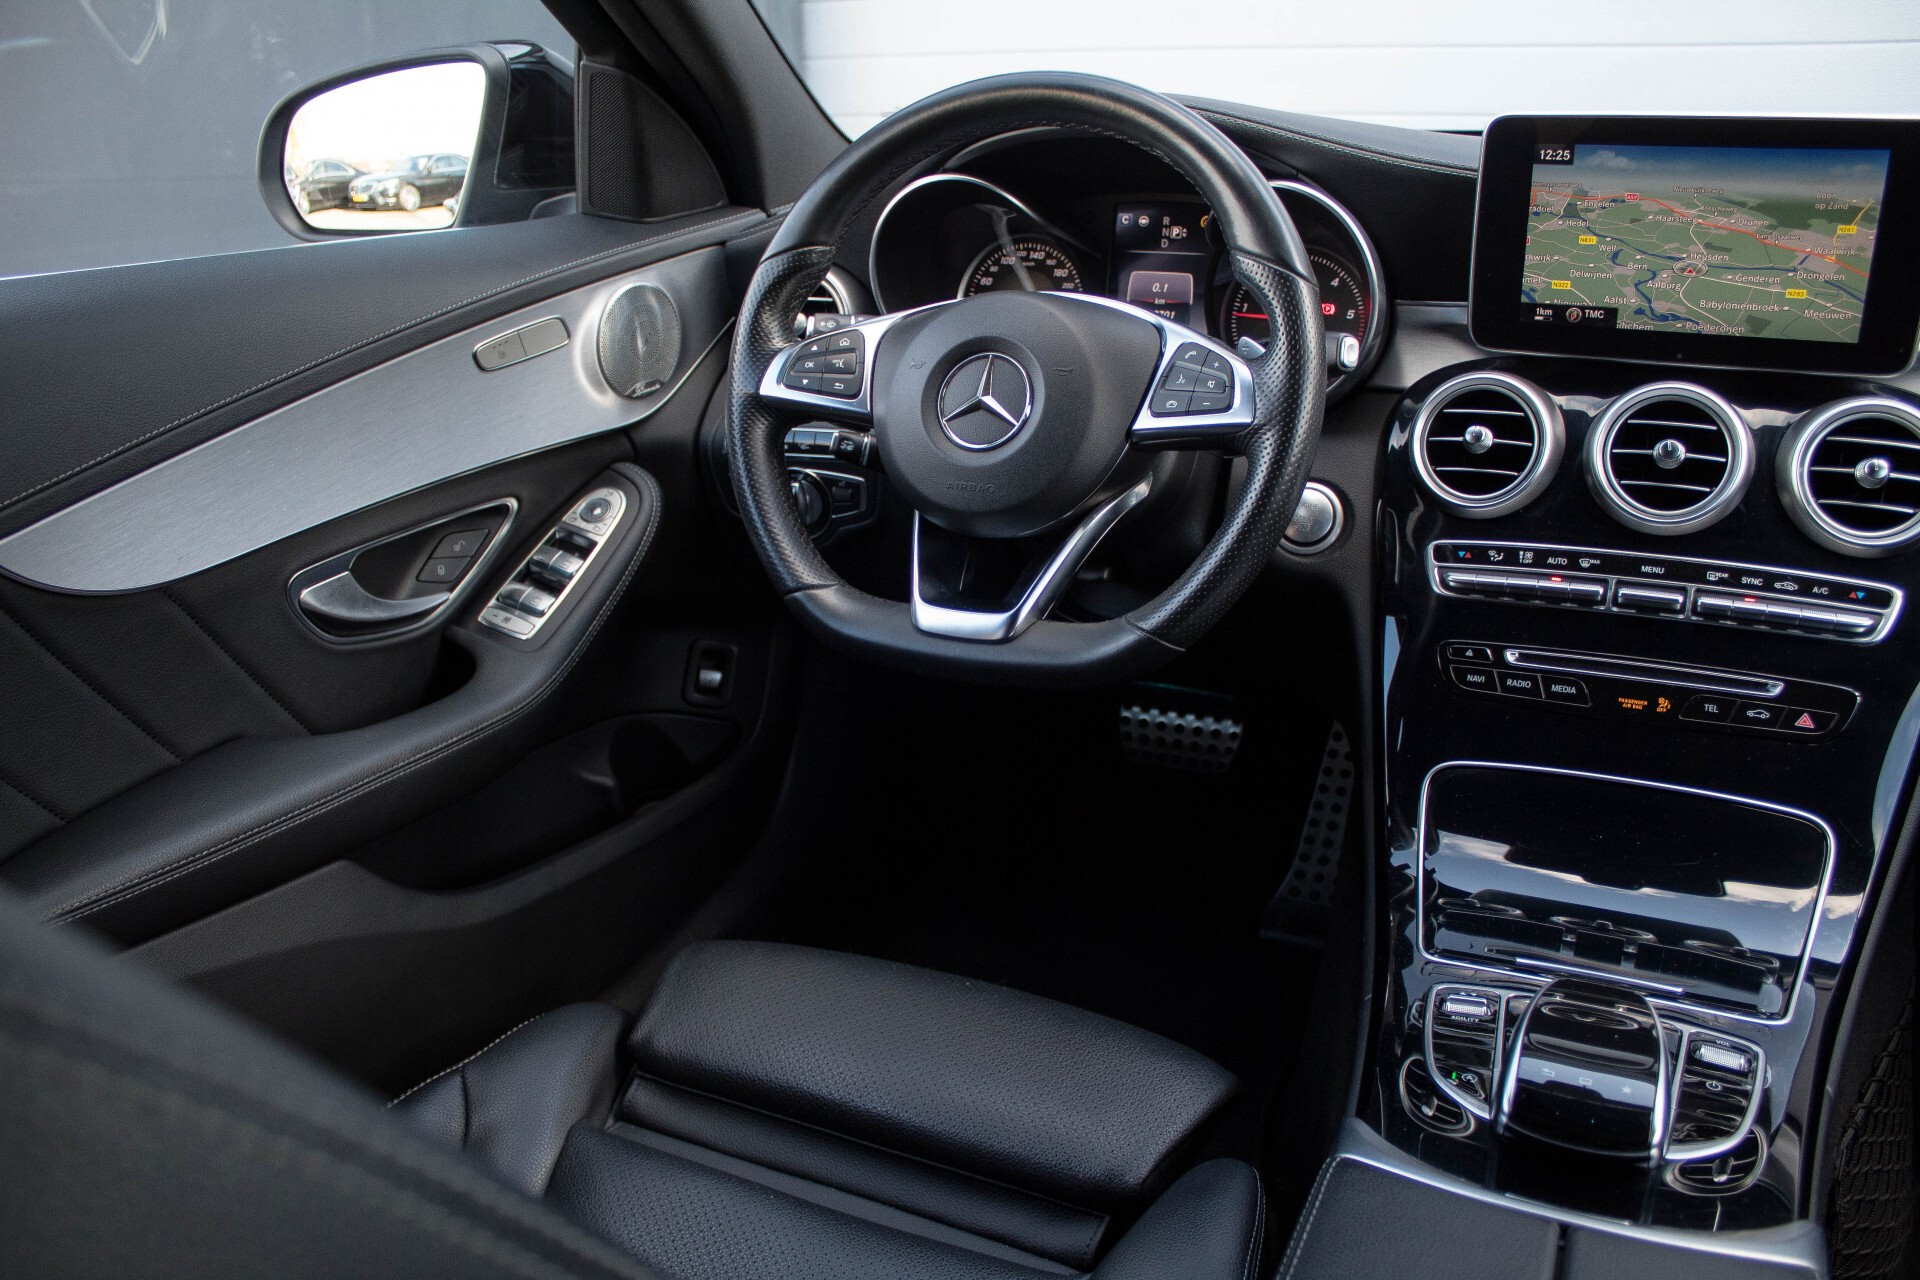 Mercedes-Benz C-Klasse Estate 250 Bluetec AMG Panorama/Distronic/Keyless/Head-Up/Burmester/Comand Aut7 Foto 6